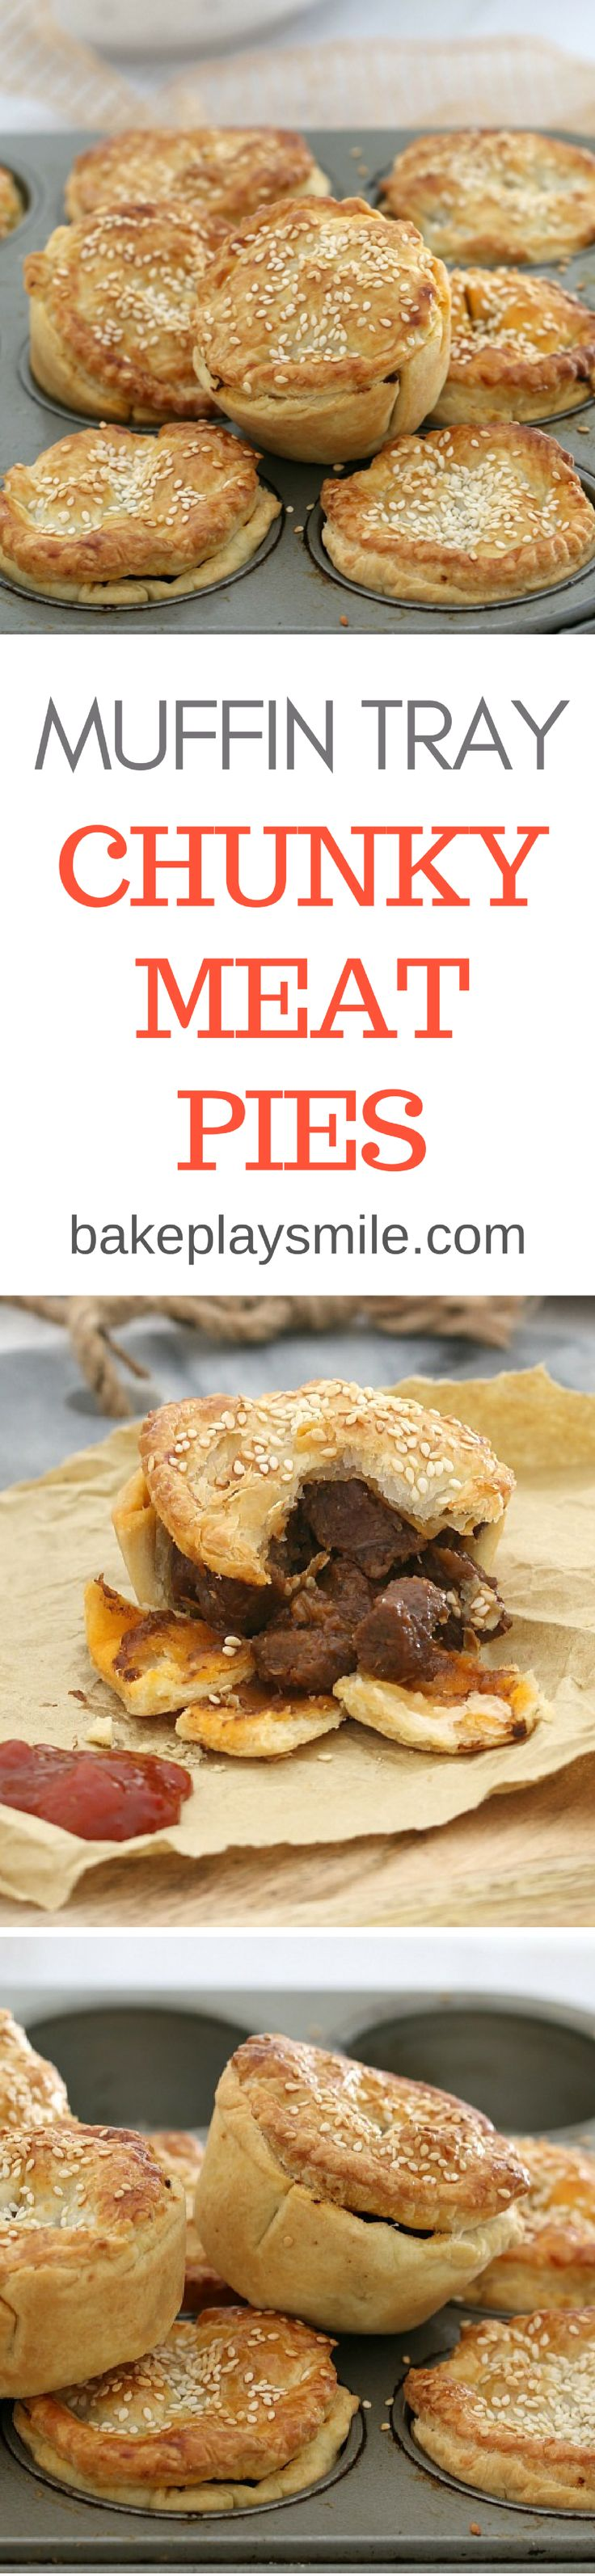 Muffin Tray Chunky Meat Pies These easy muffin tray chunky meat pies are made with flakey pastry, beef chunks and a yummy gravy sauce… the perfect savoury snack or light dinner! #pies #homemade #recipe #savoury #beef